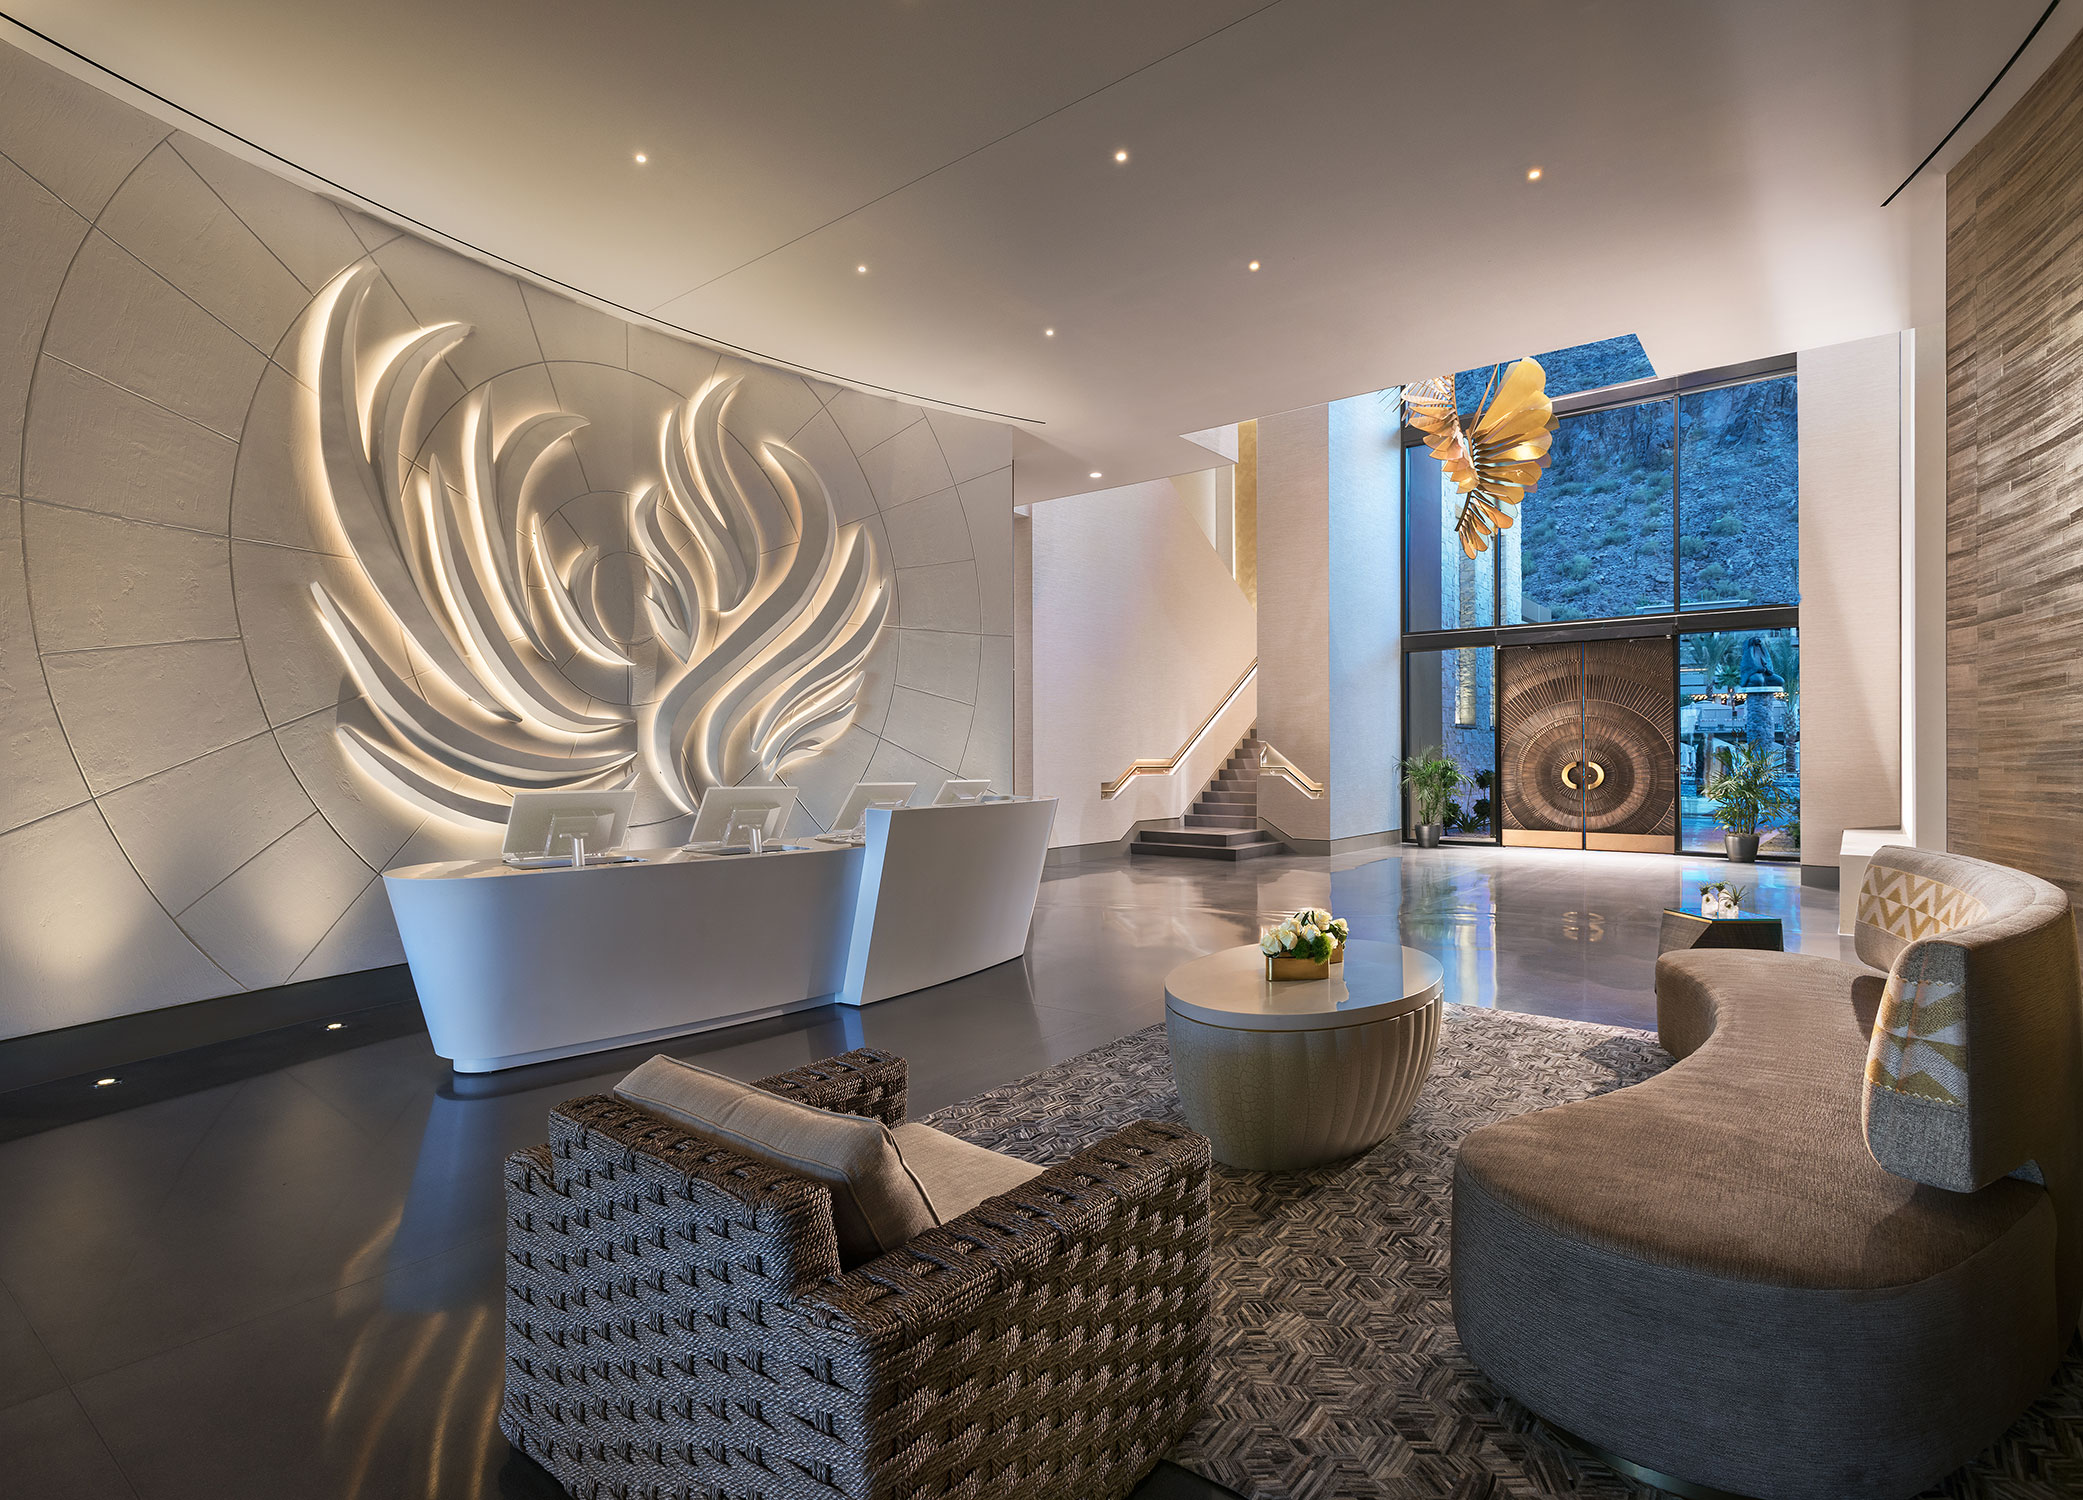 The brand-new spa has phoenix-inspired artwork throughout.